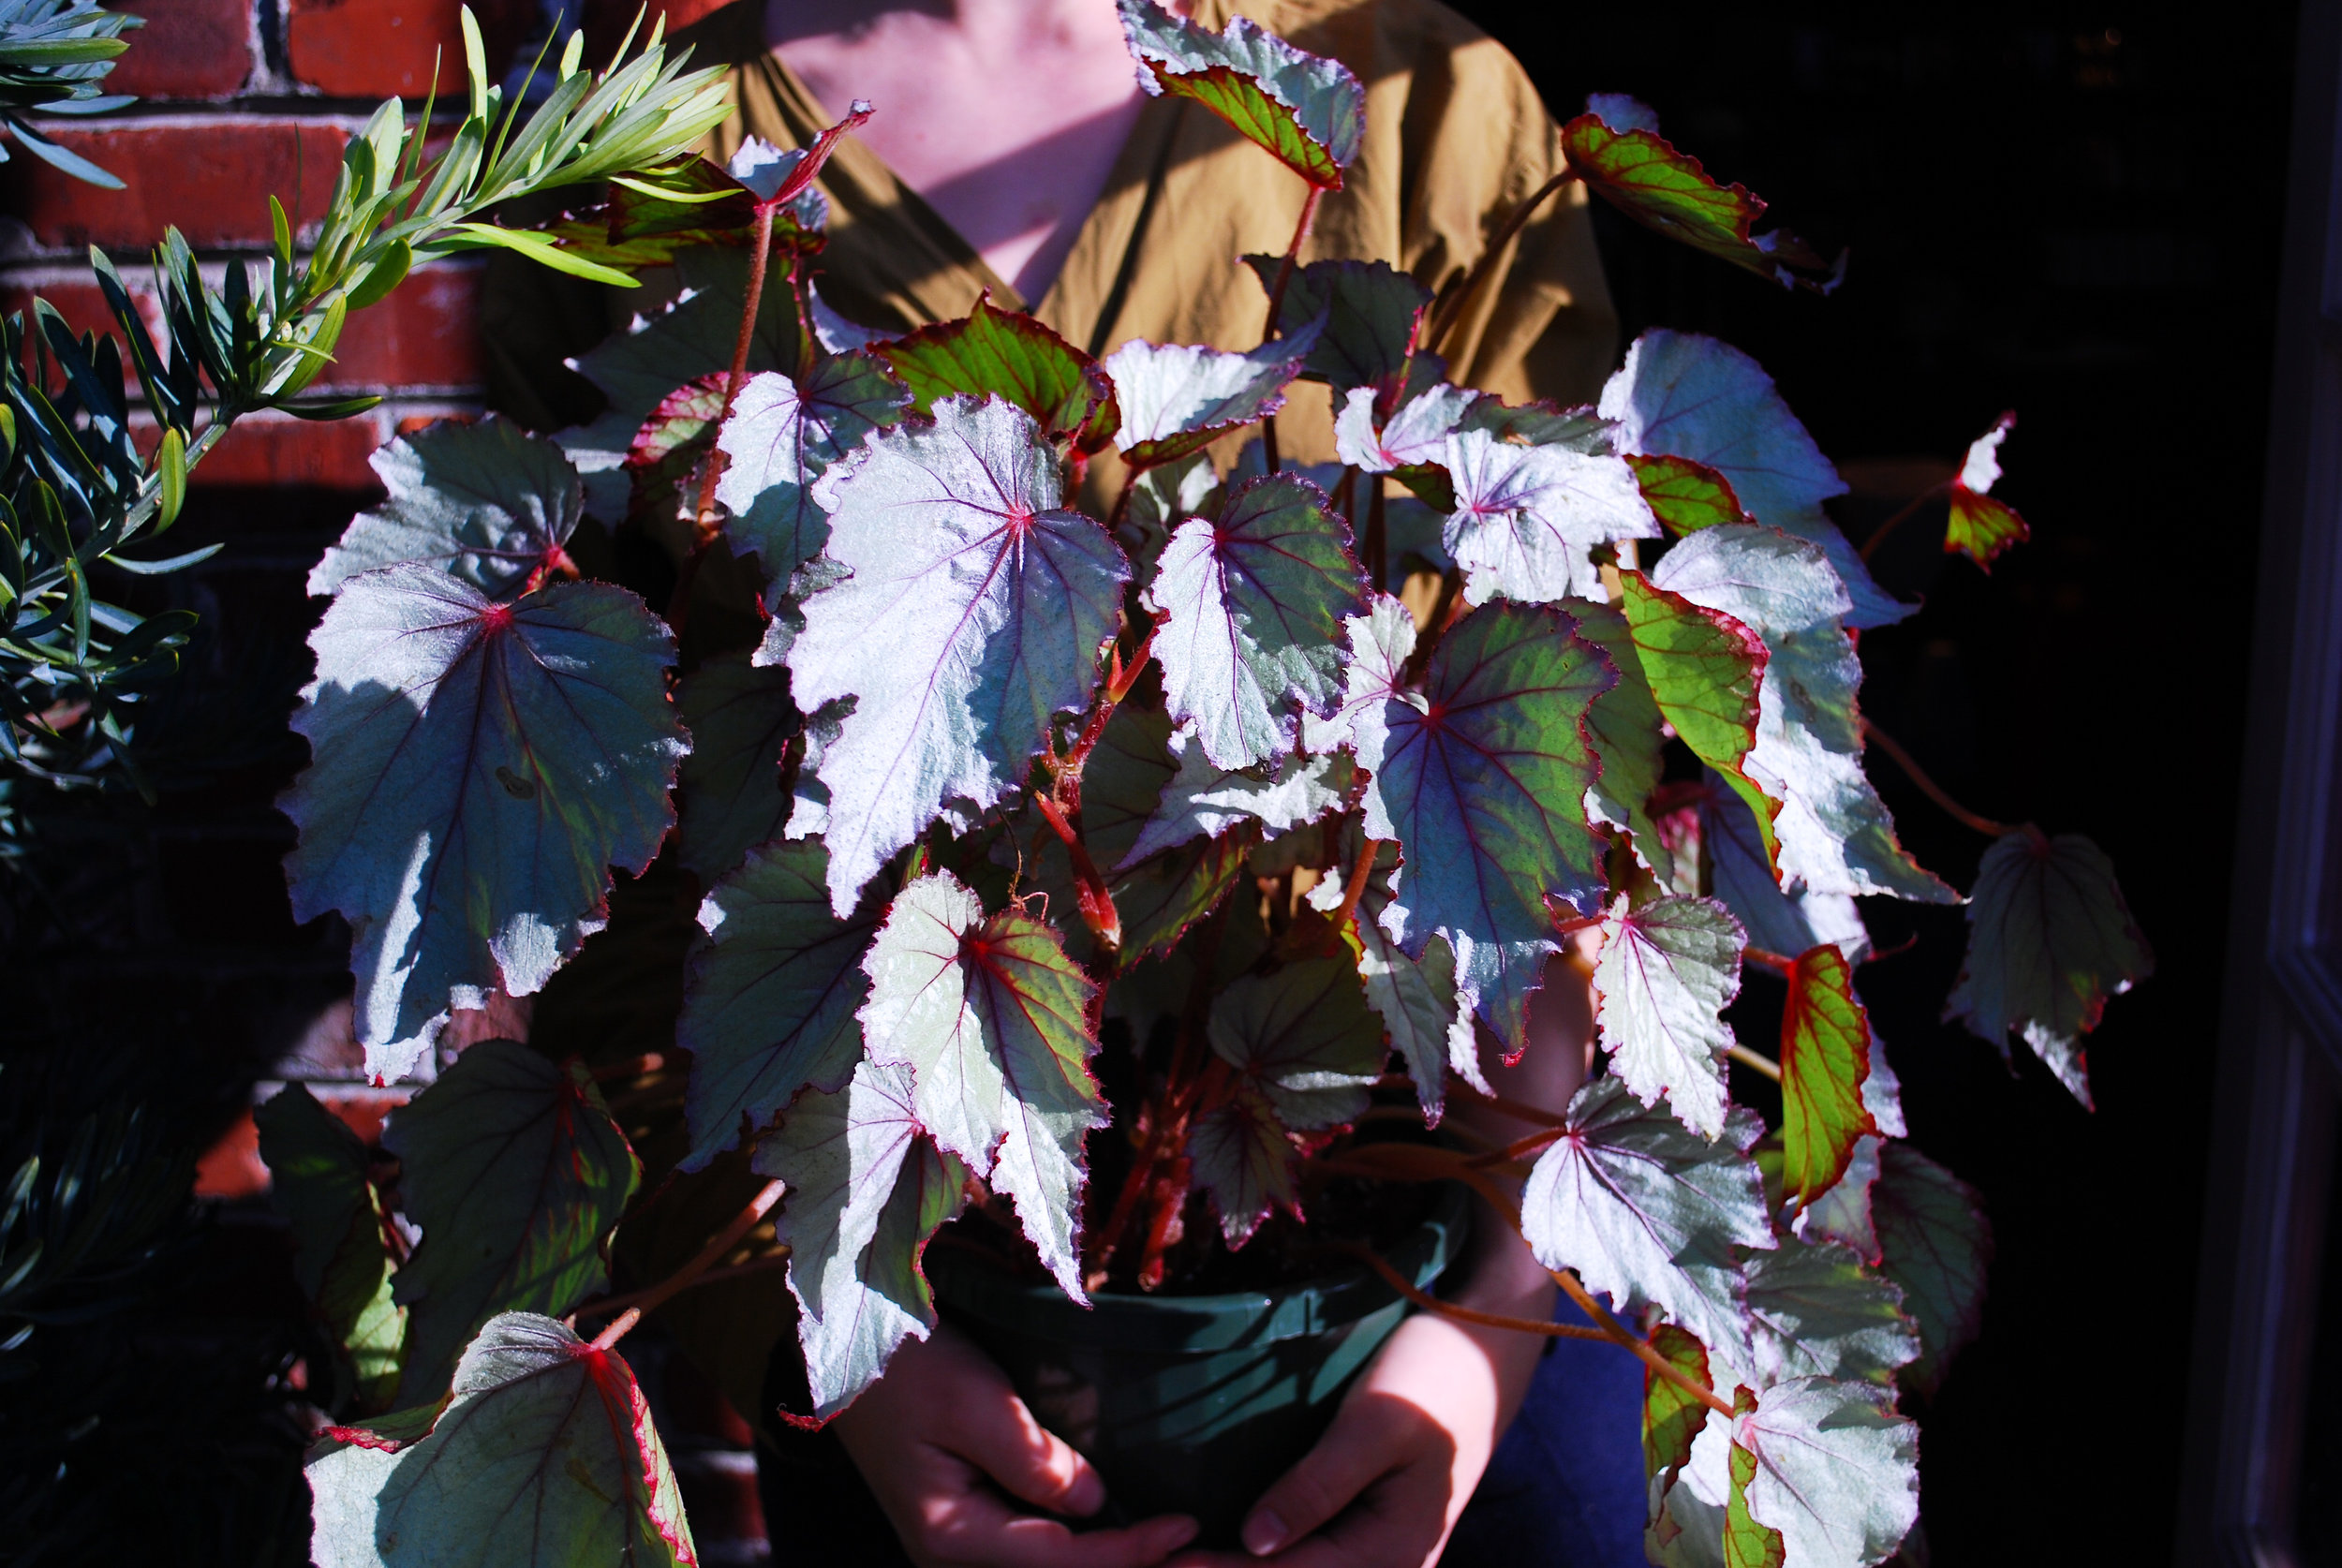 A (quite large) begonia.